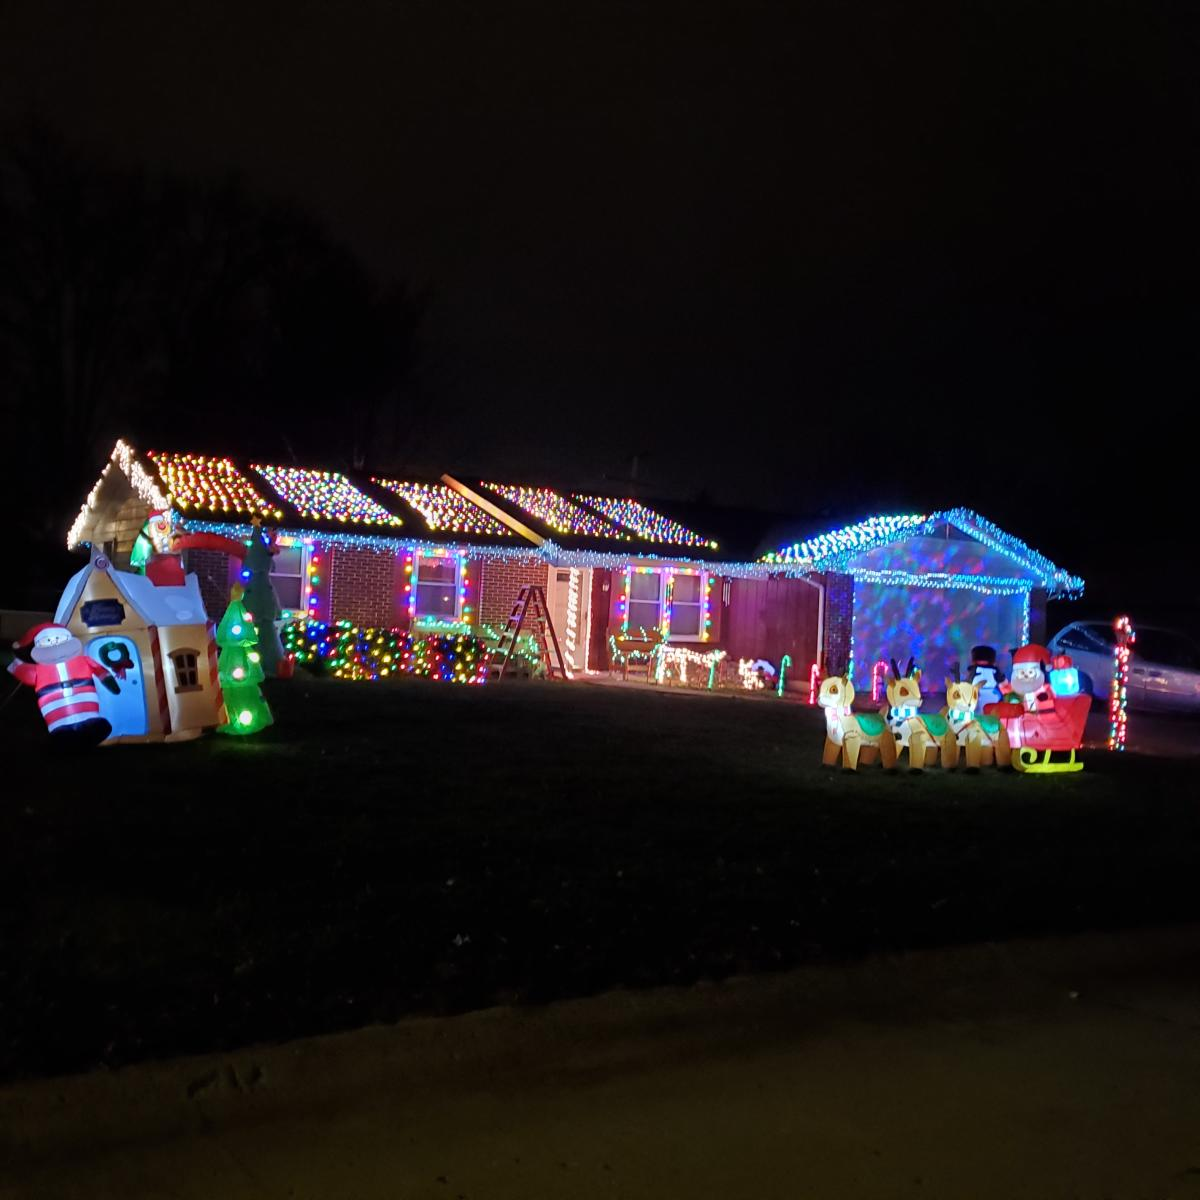 Christmas Lights Display at 7023 Elmbrook Drive in Fort Wayne, Indiana